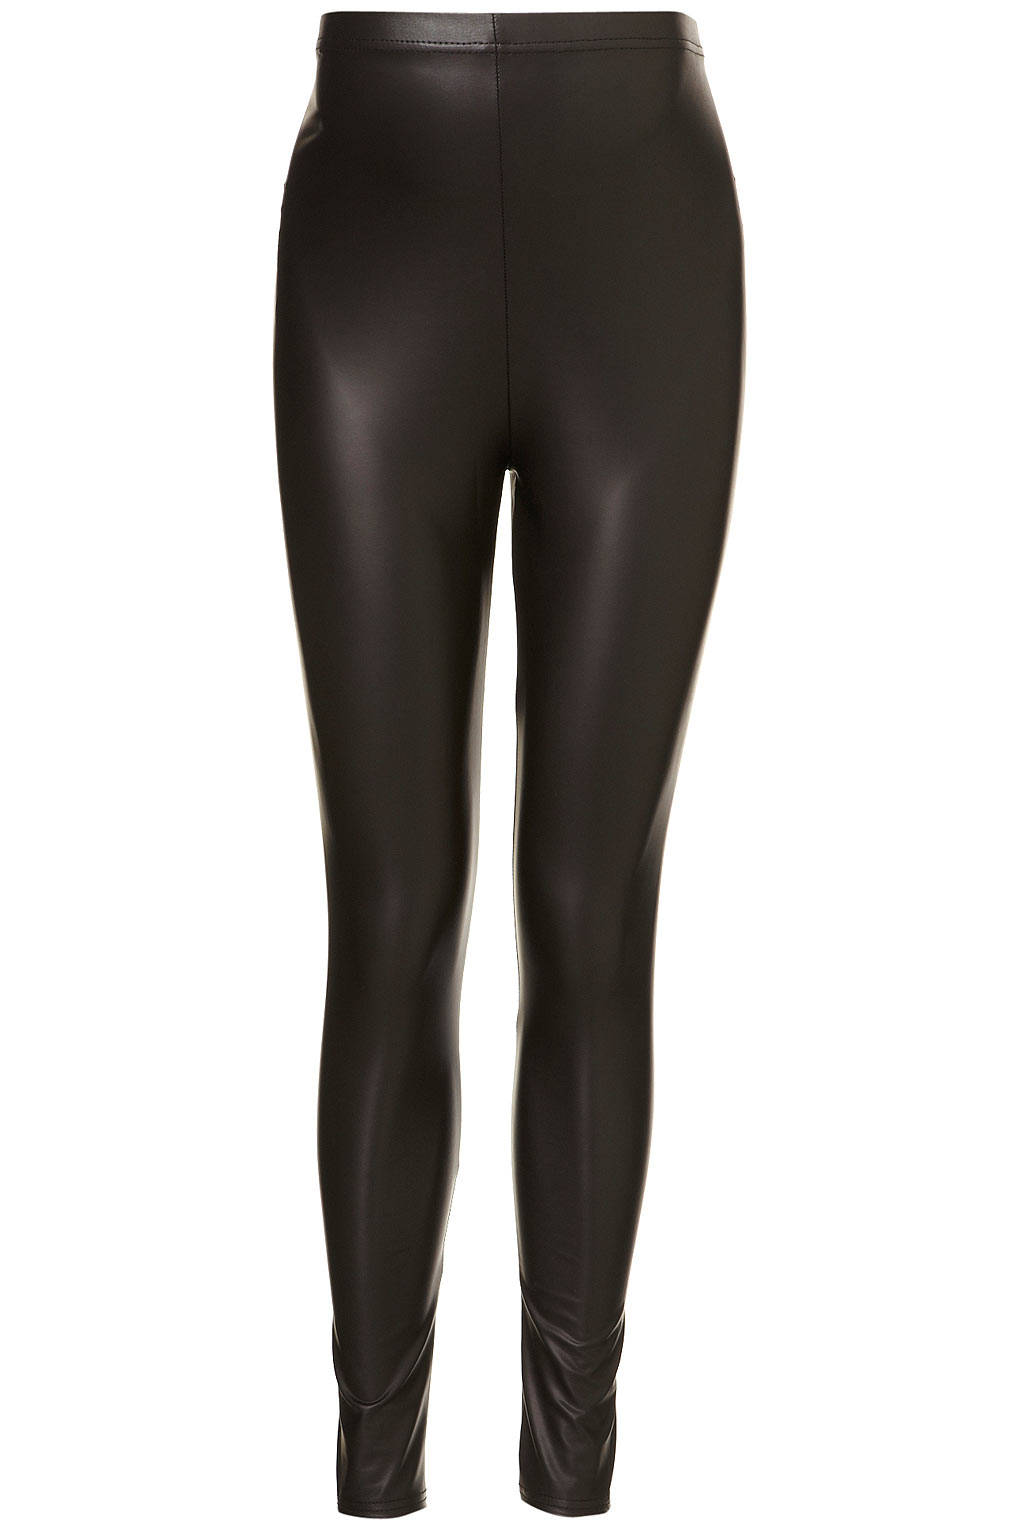 Topshop Maternity wet Look leggings